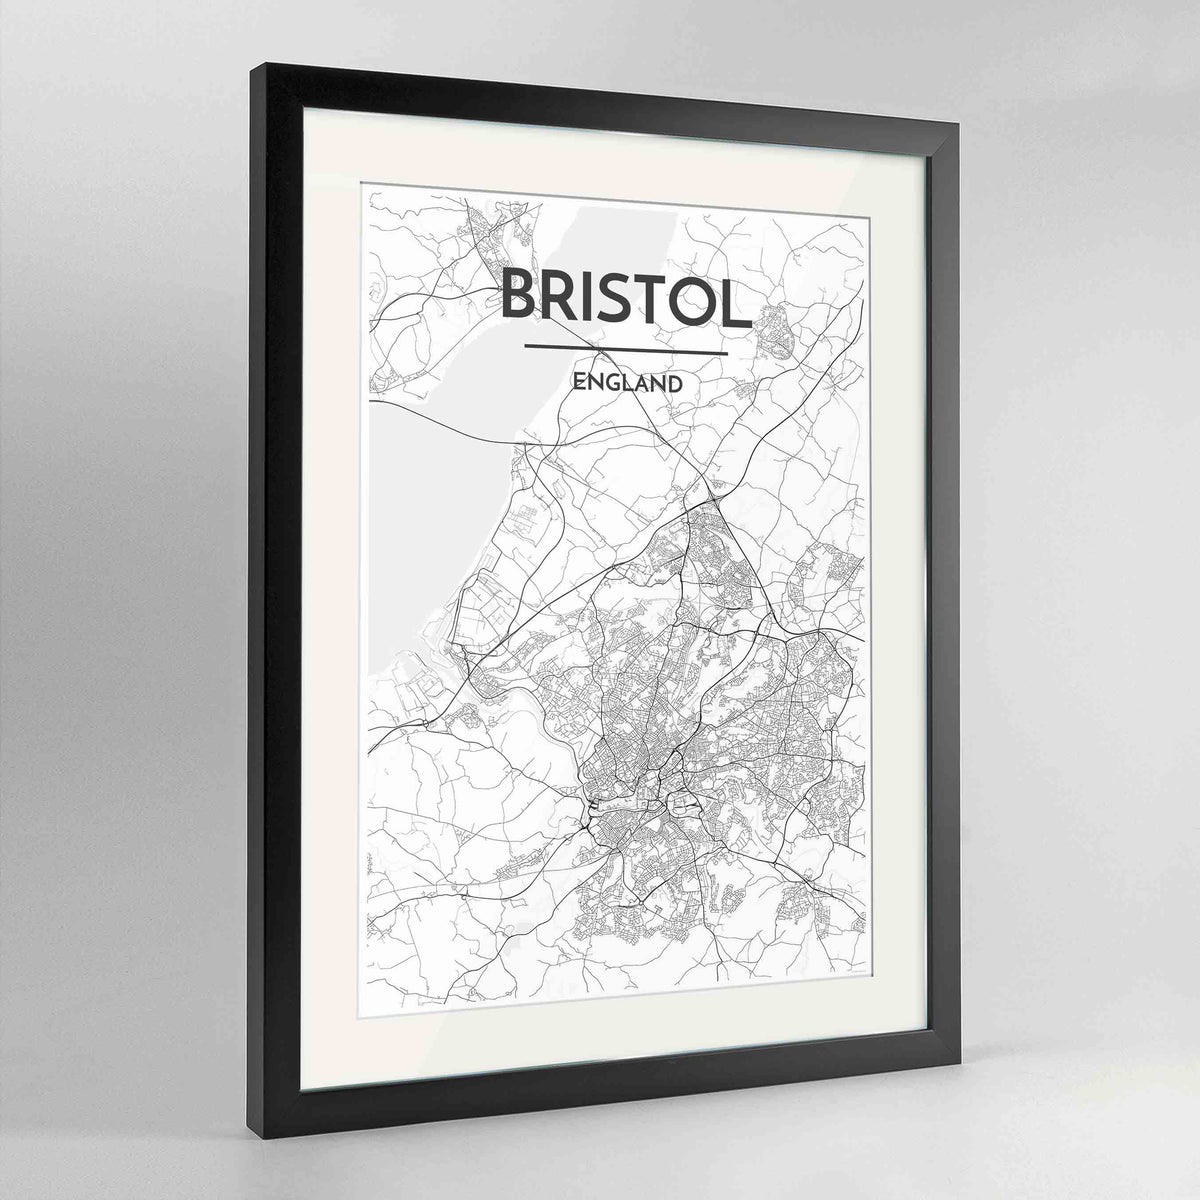 "Framed Bristol Map Art Print 24x36"" Contemporary Black frame Point Two Design Group"